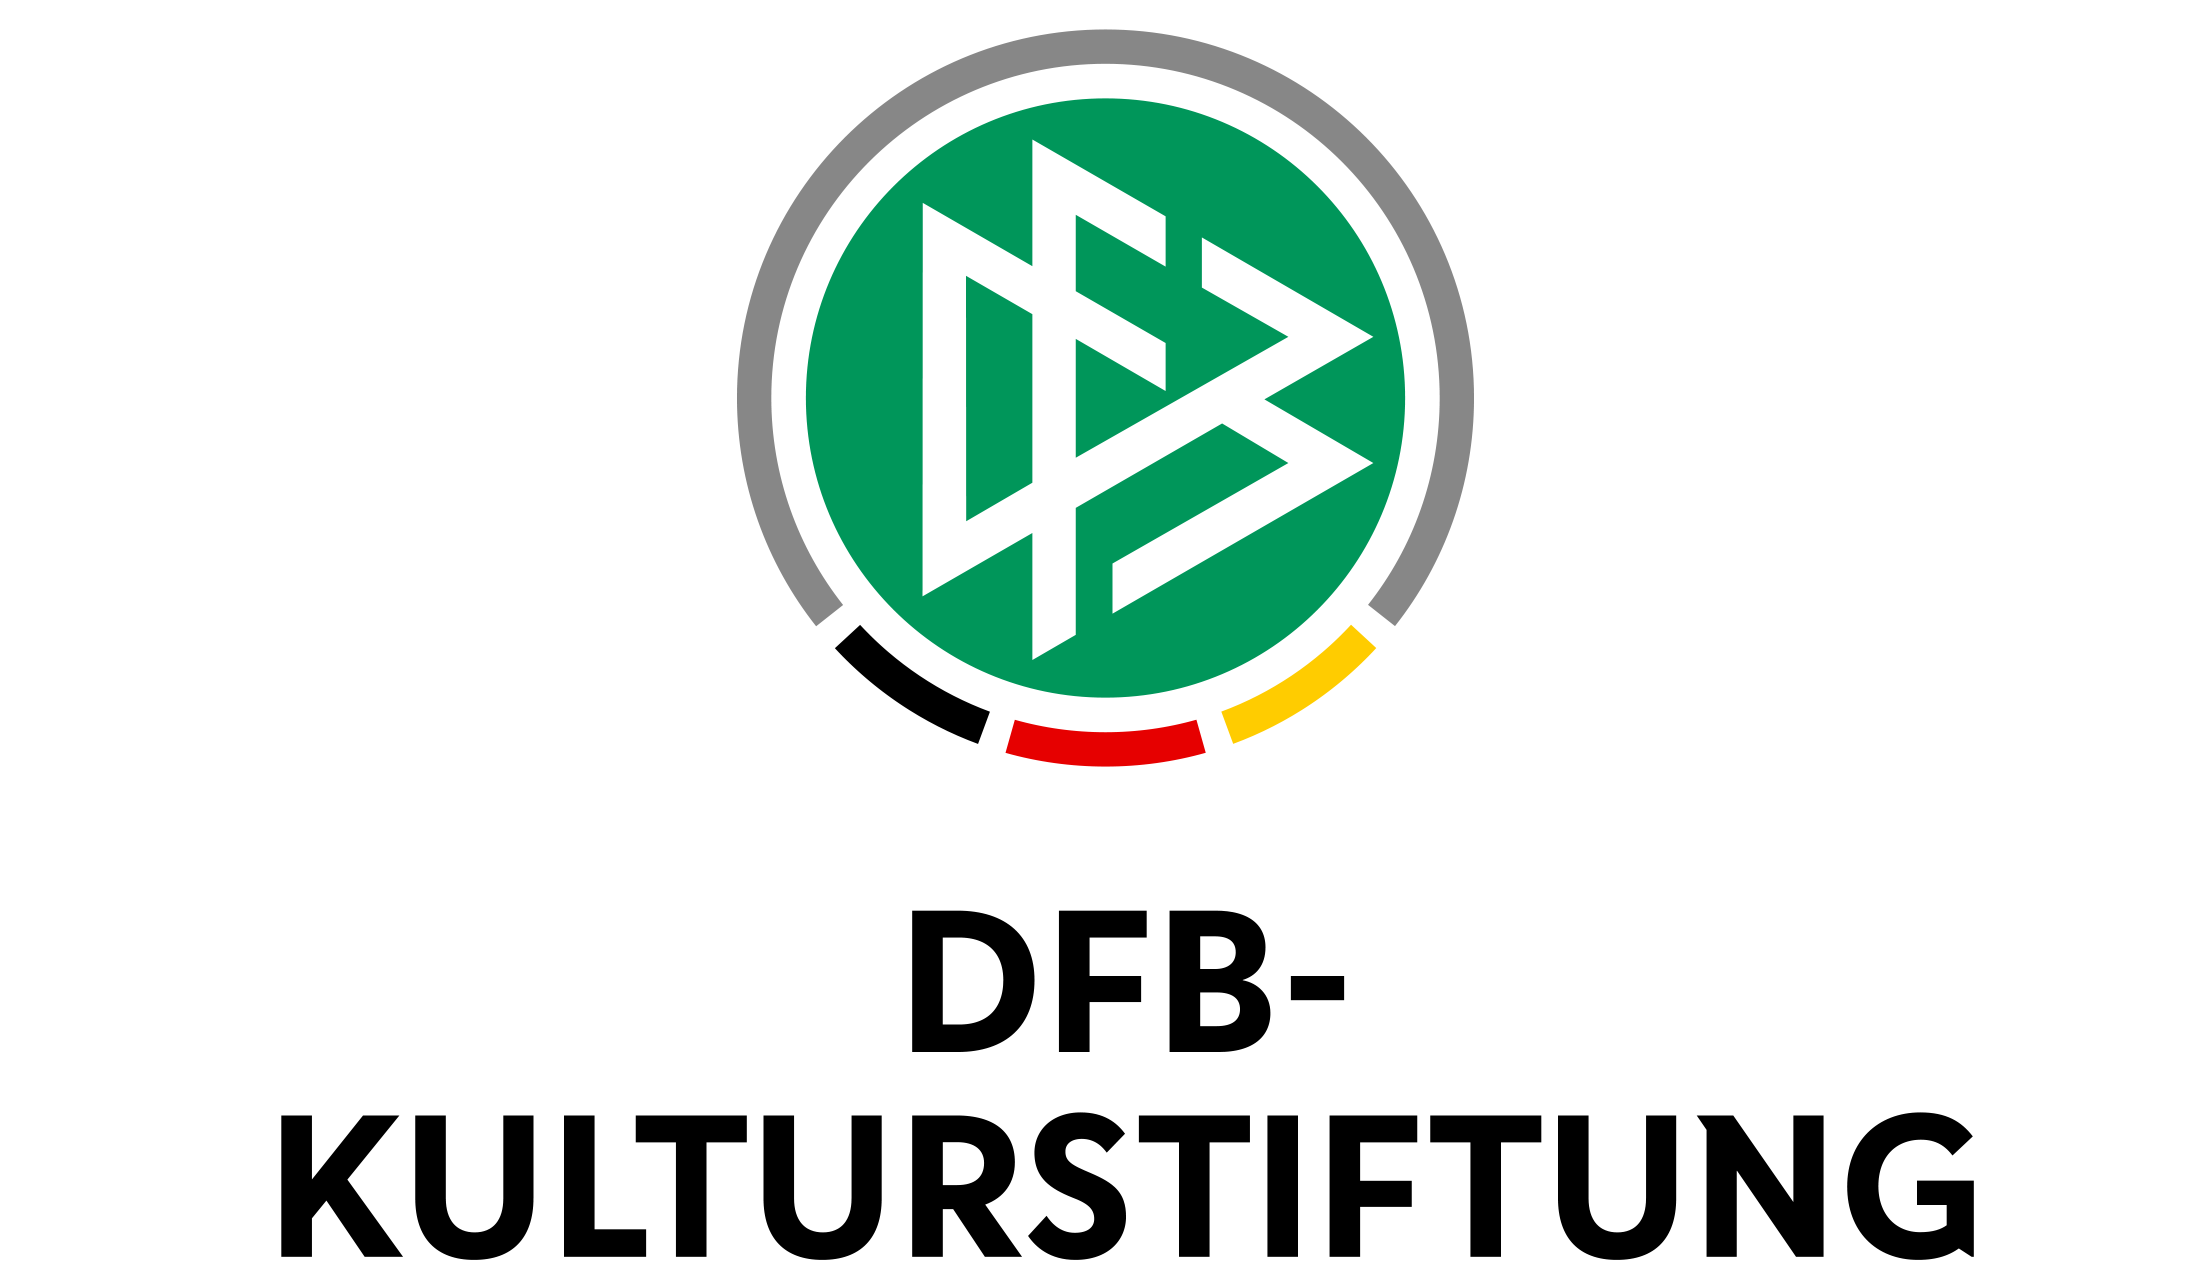 Logo of the DFB Culture Foundation - a green circle with stilised Letters DFB sourrounded by a grey line with lines in black-red-gold at the bottom. Underneath the name of the foundation